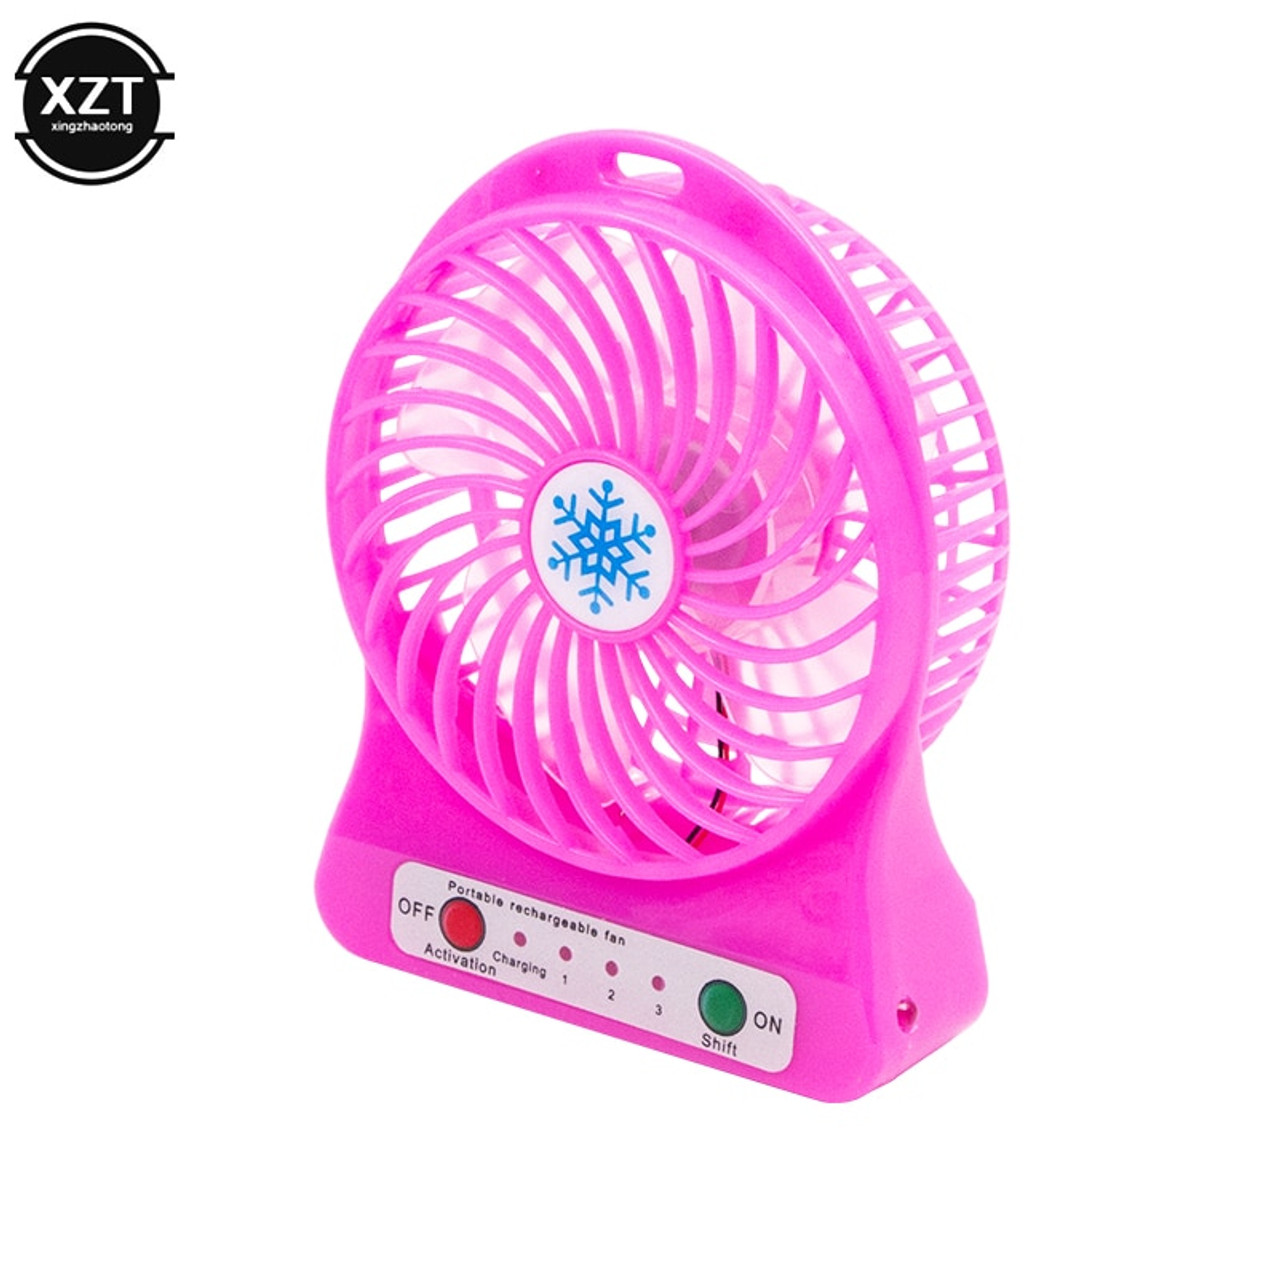 Quiet Mini Fan LED Light Air Cooler Desk Rechargeable USB Battery Portable US